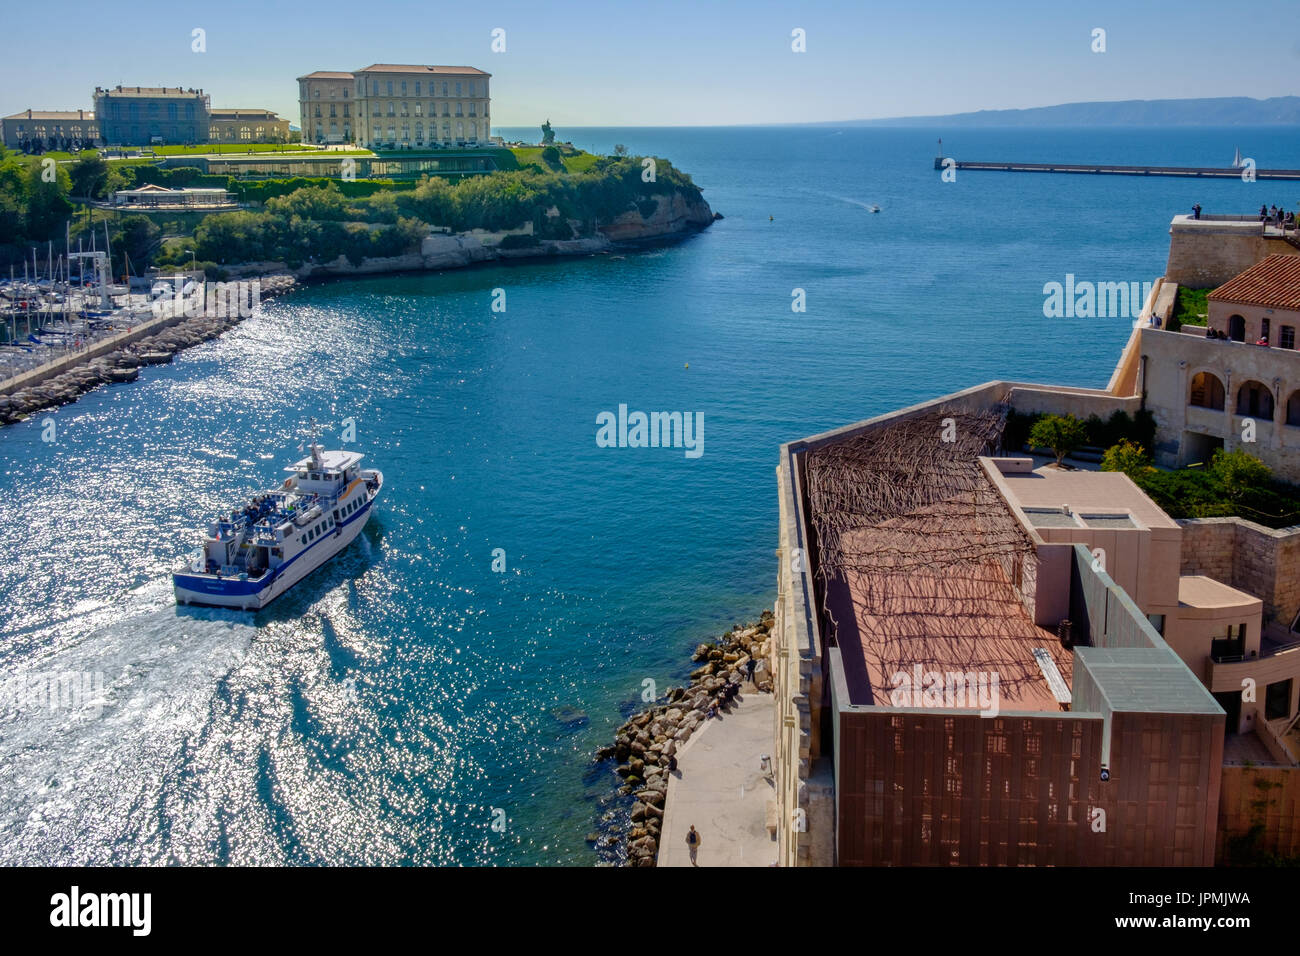 Fort st jean stock photos fort st jean stock images alamy - Port maritime marseille ...